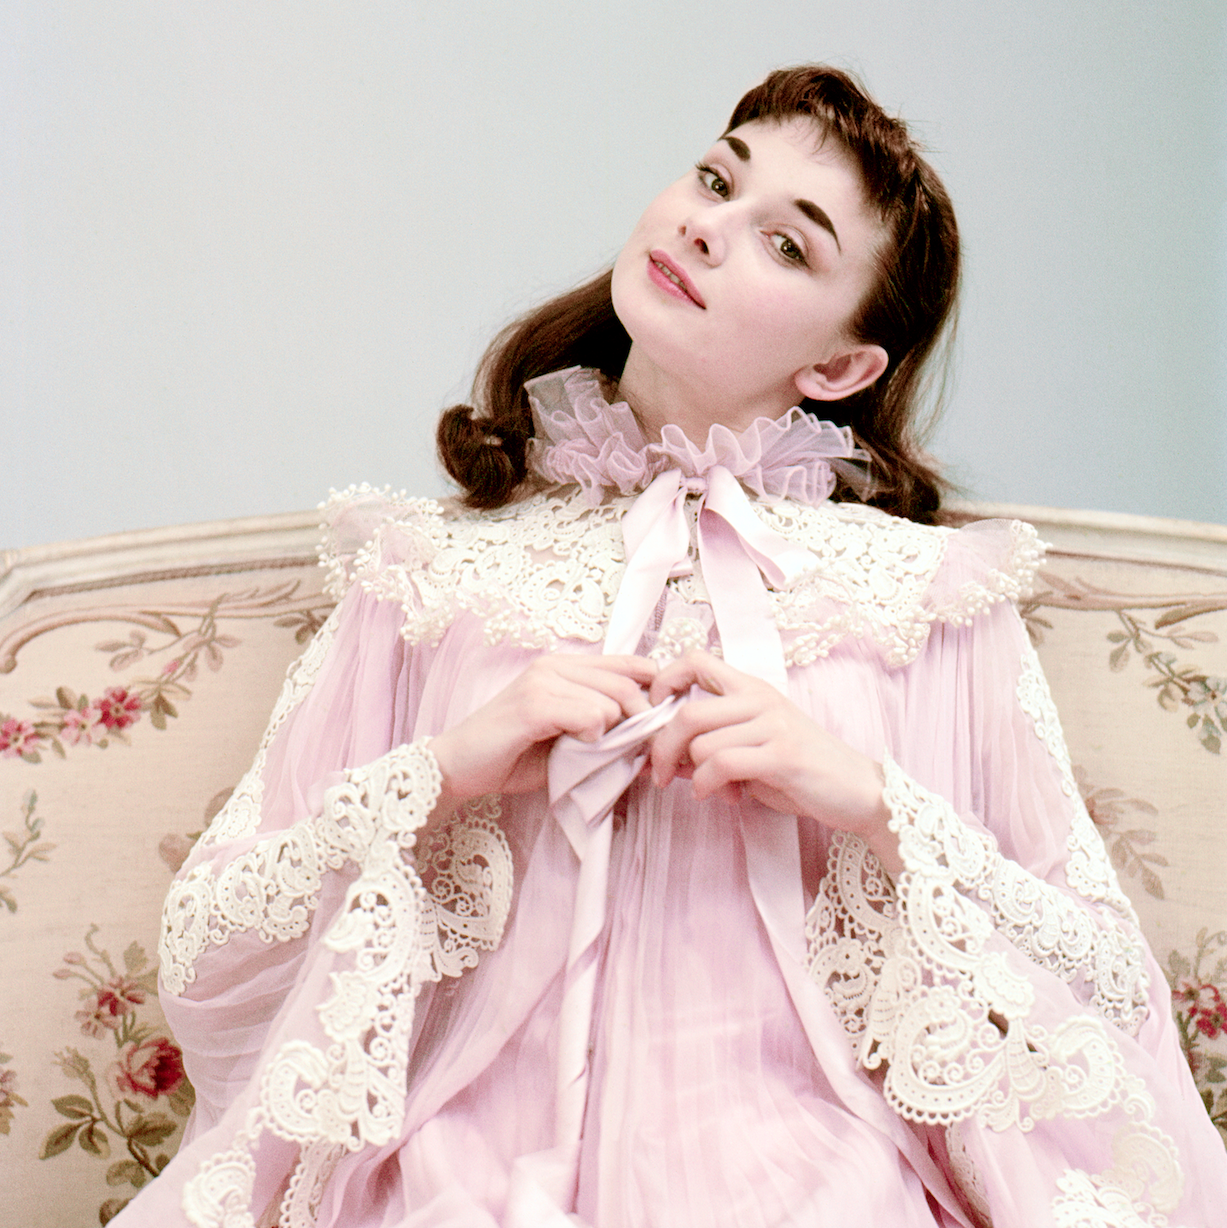 rare photo of young audrey hepburn in pink dress long hair